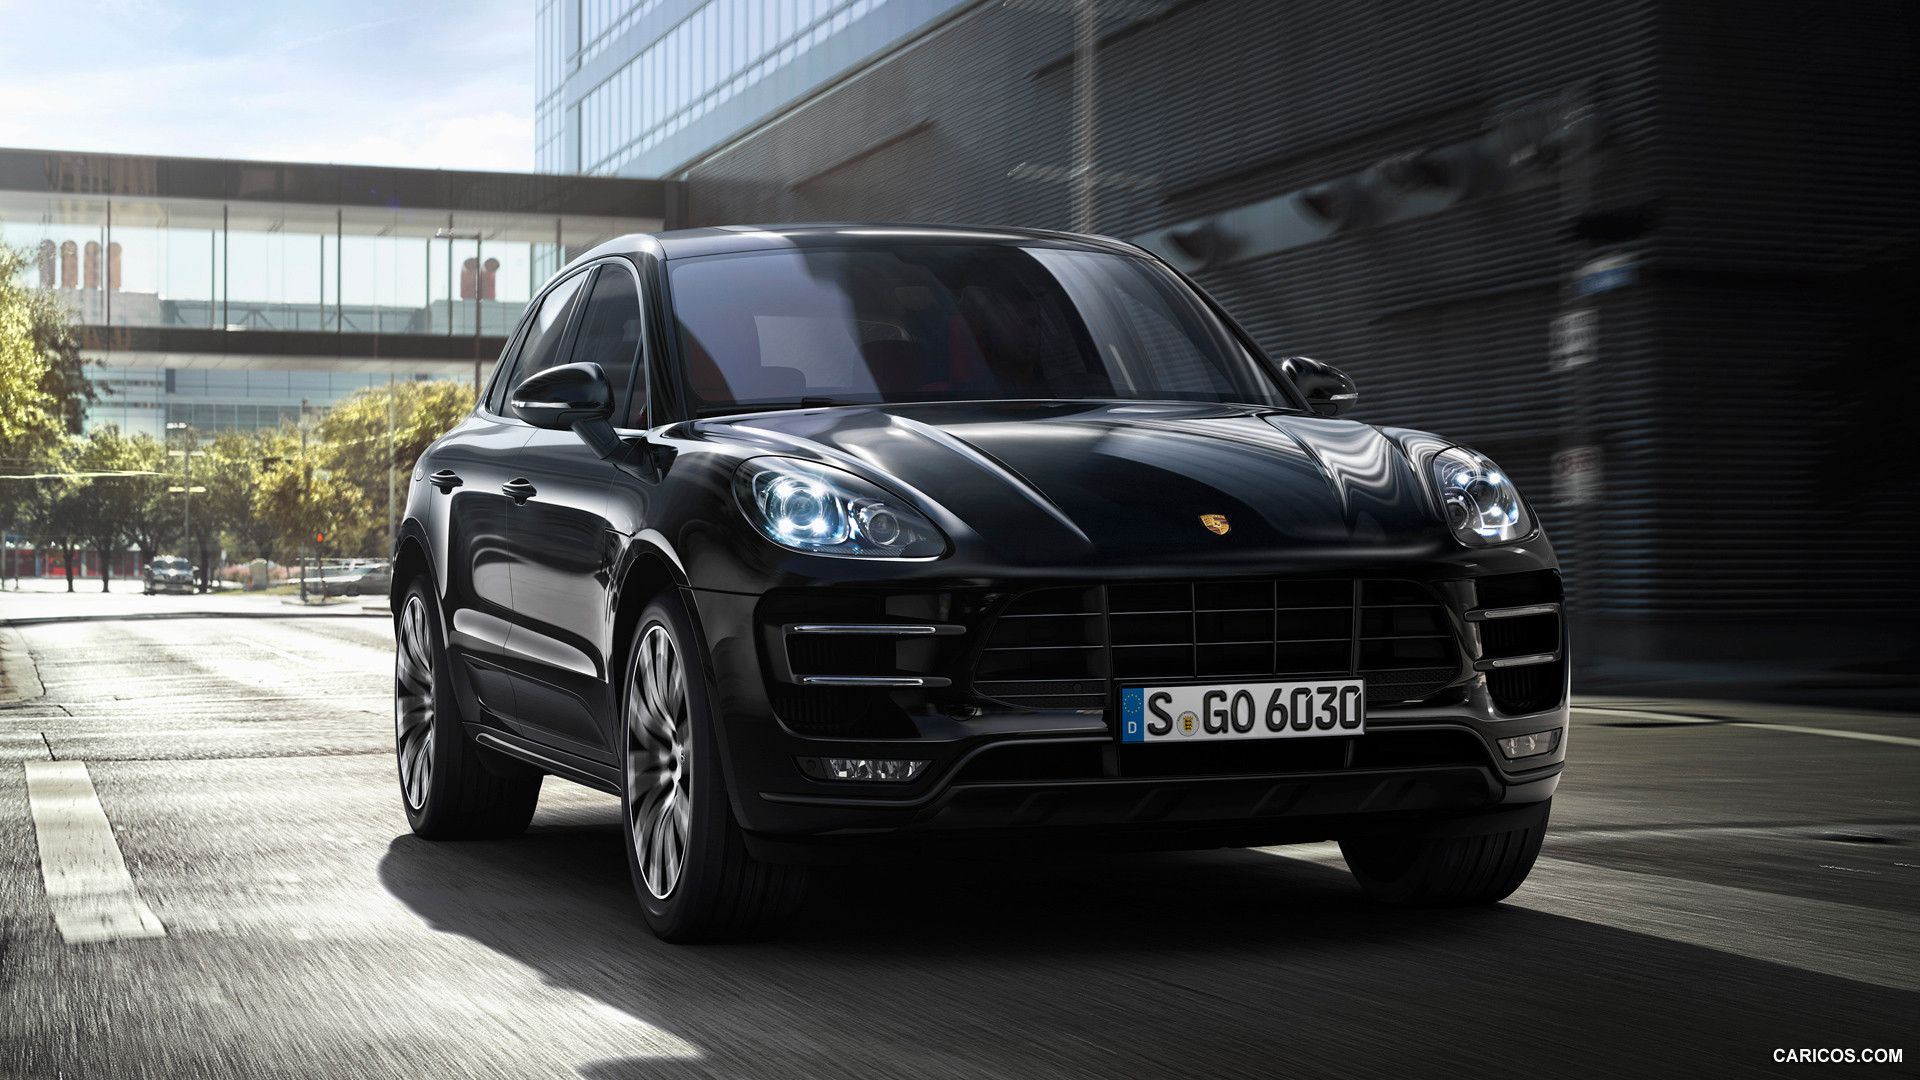 Porsche Macan Wallpapers Top Free Porsche Macan Backgrounds Wallpaperaccess